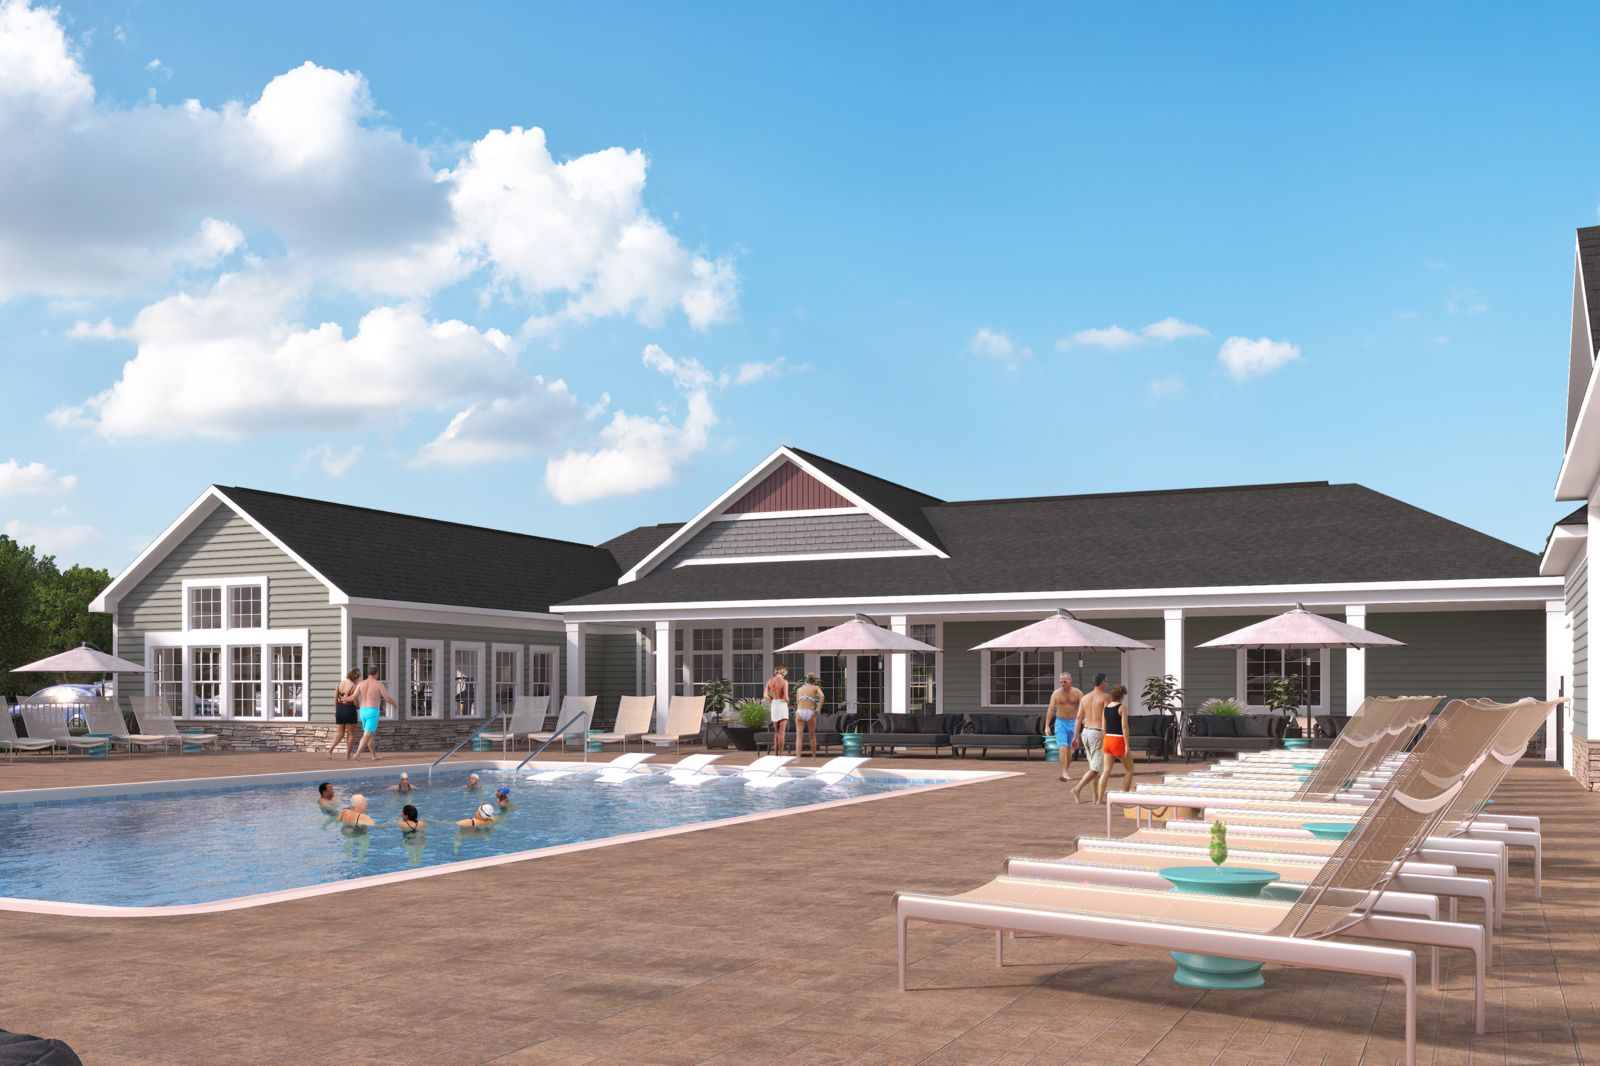 WELCOME TO BIG ELK 55+ VILLAS:The lowest-priced new homes with first-floor living and a 2-car garage, future pool and clubhouse, just minutes from Longwood Gardens and Route 1.Click here to schedule a visit!